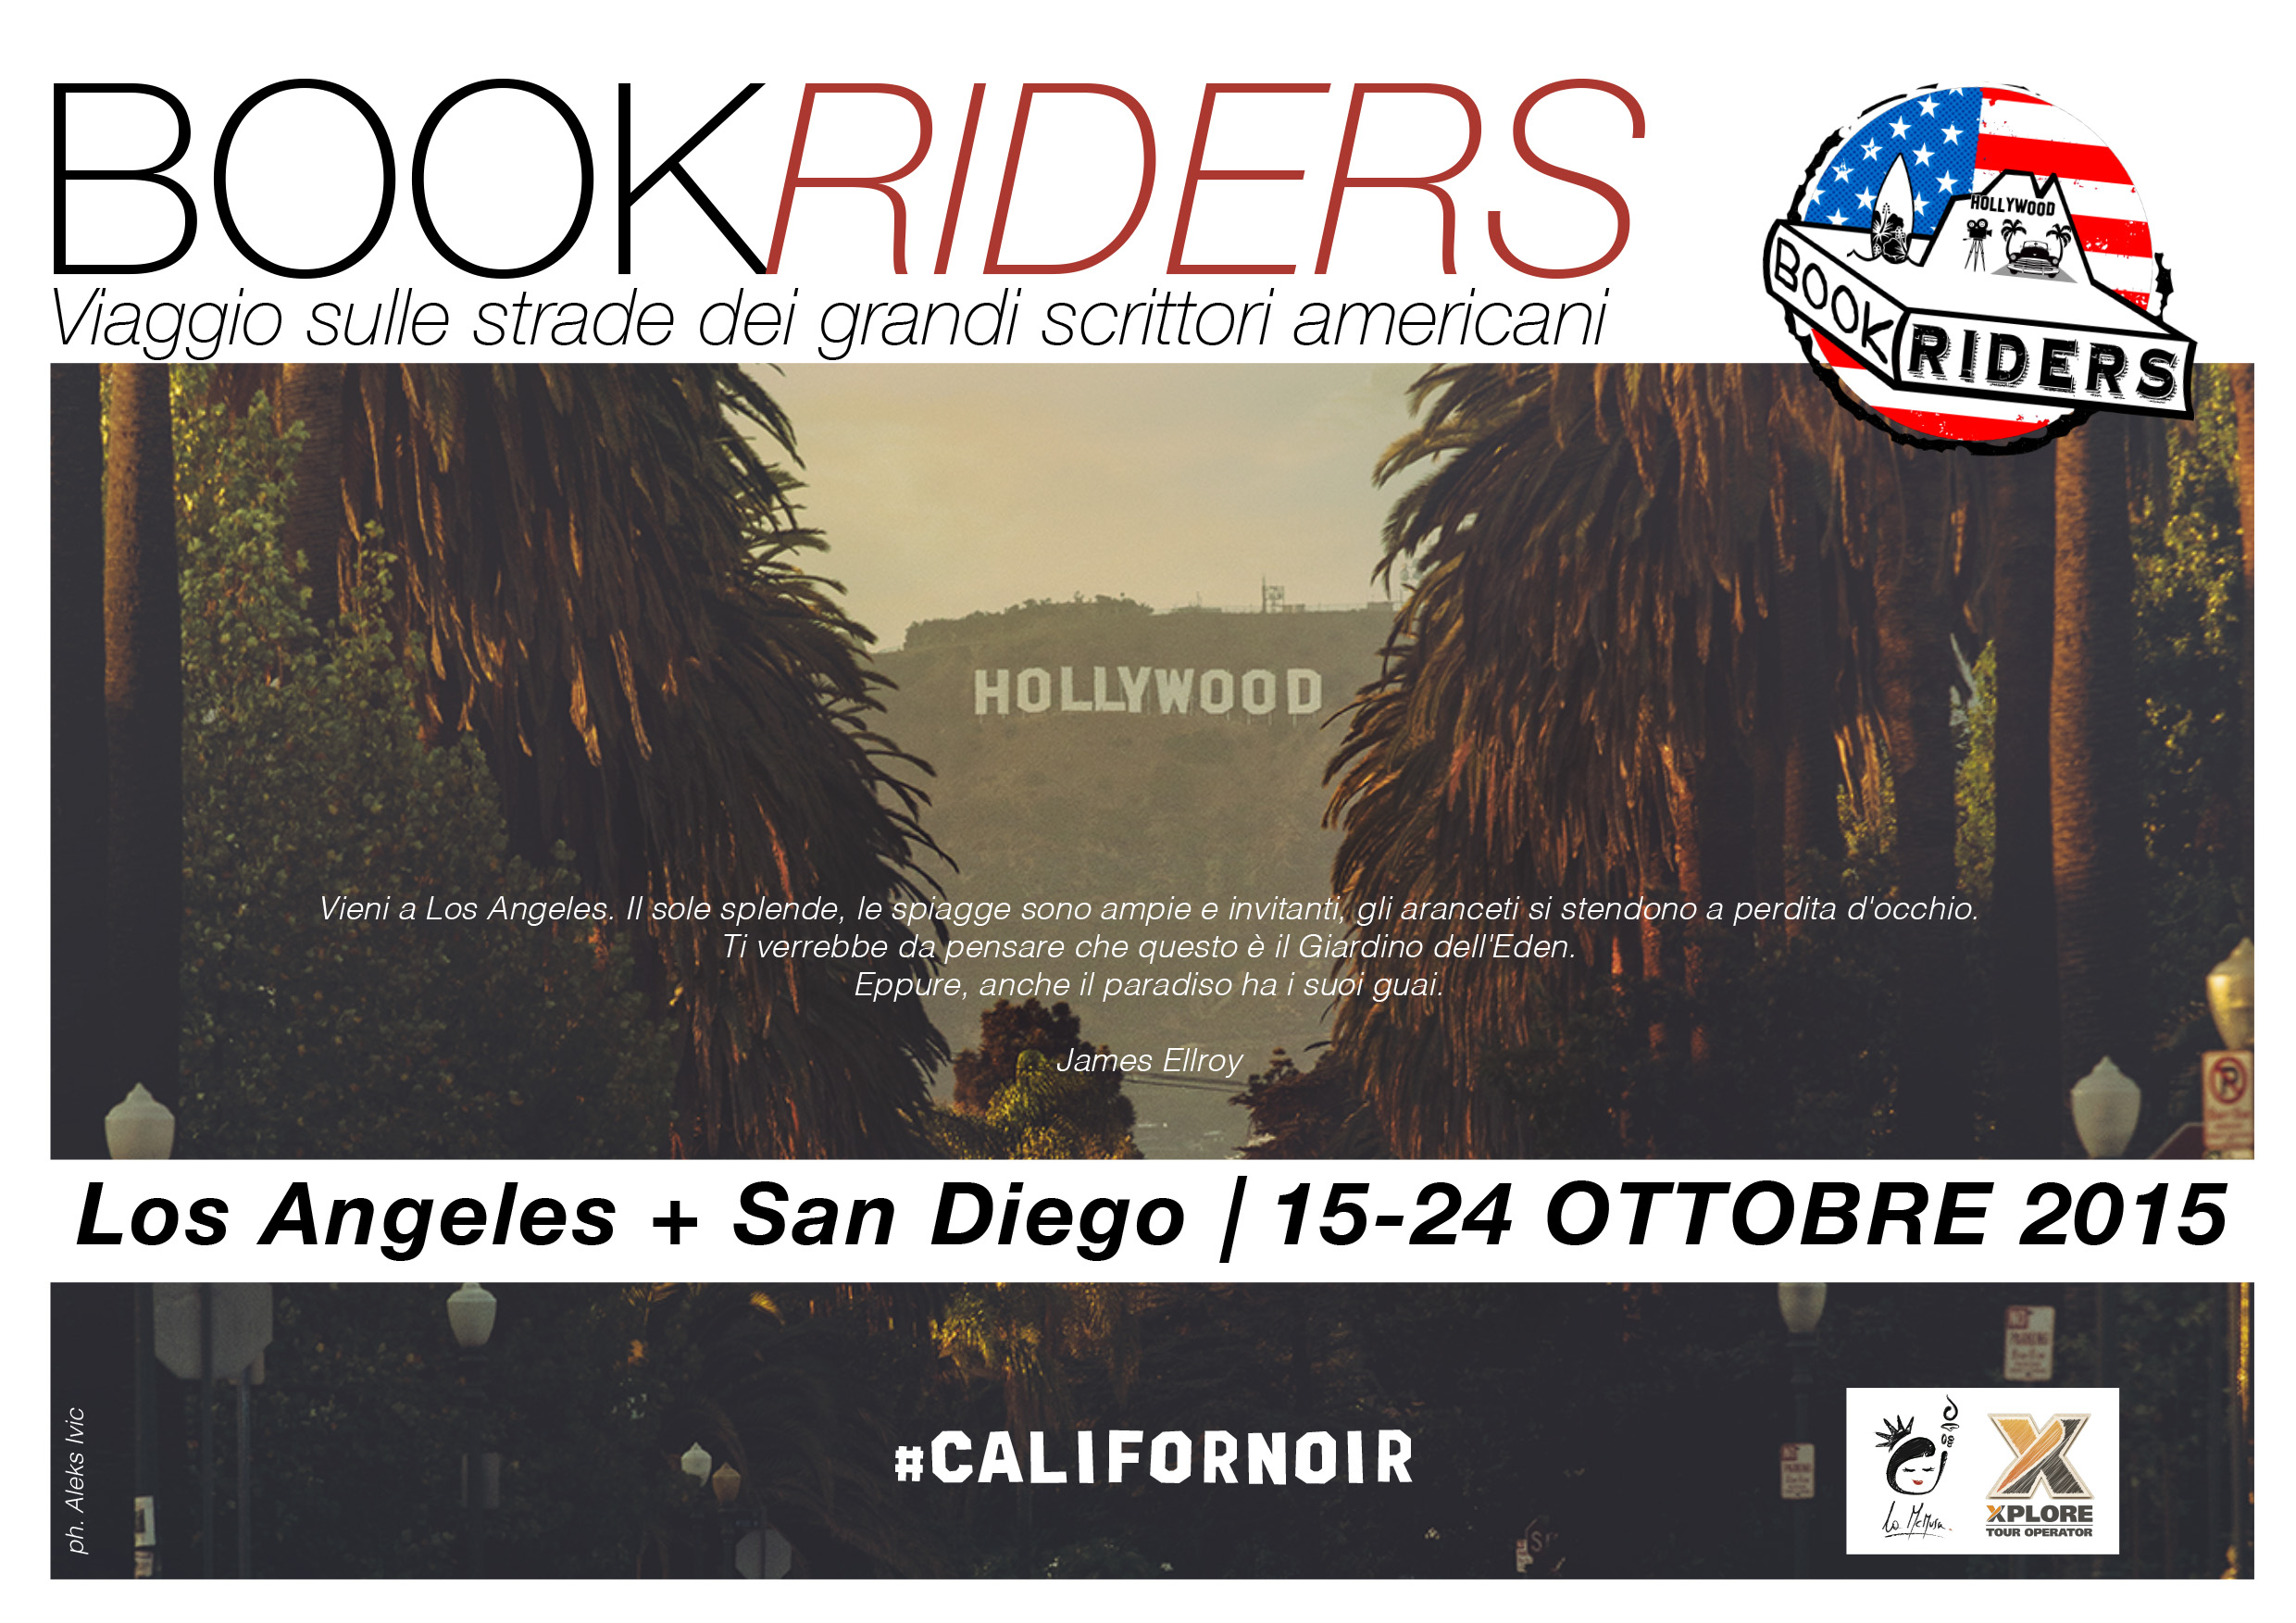 BookRiders_Californoir_FLYER.jpg